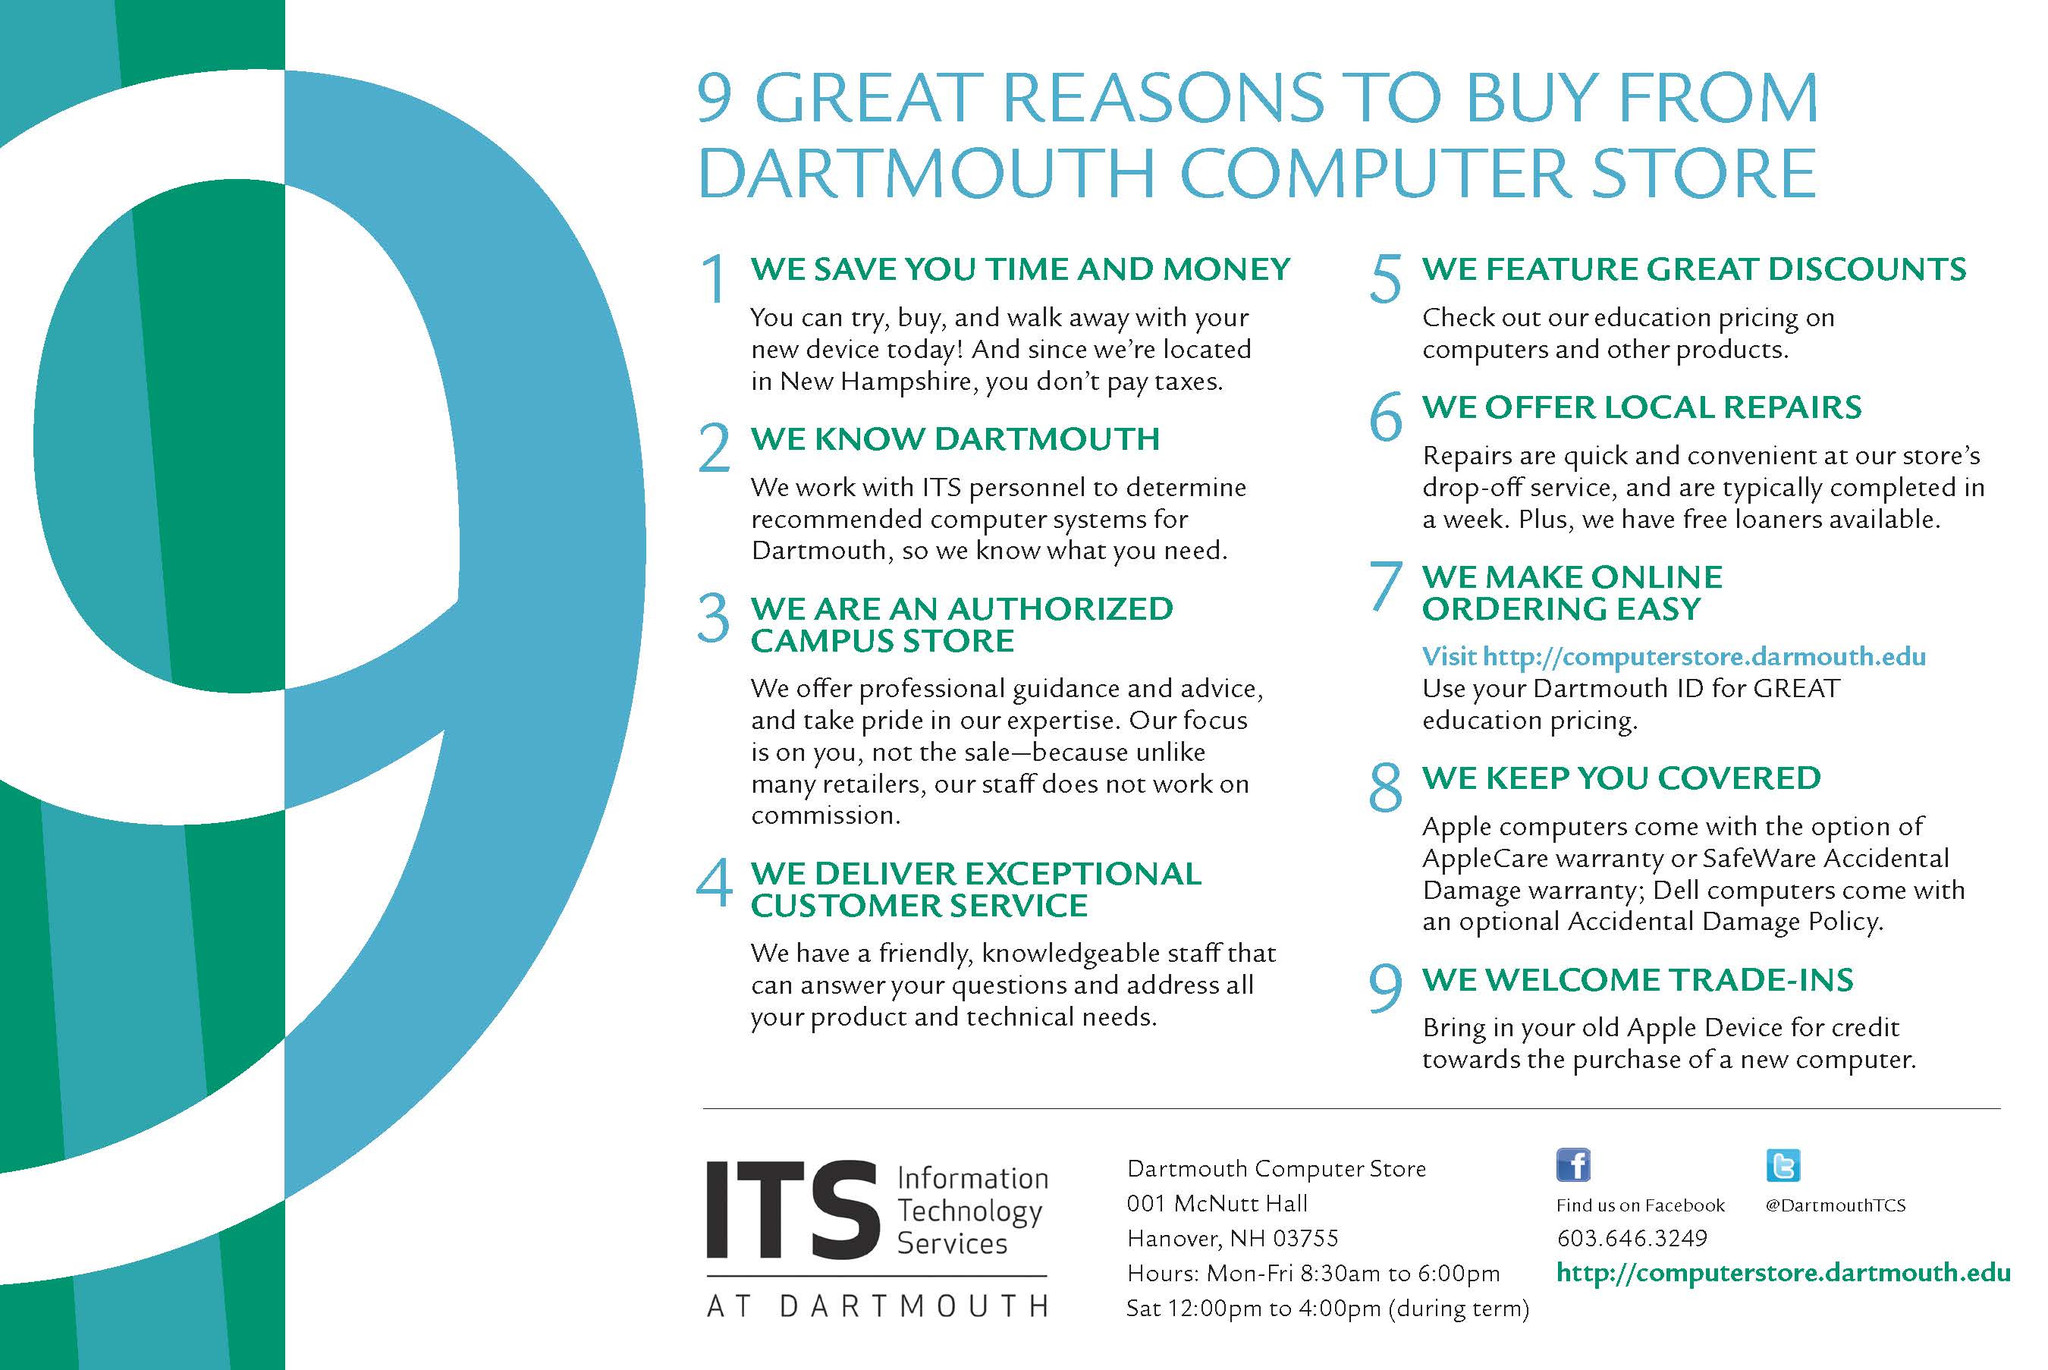 9 great reasons to buy from us